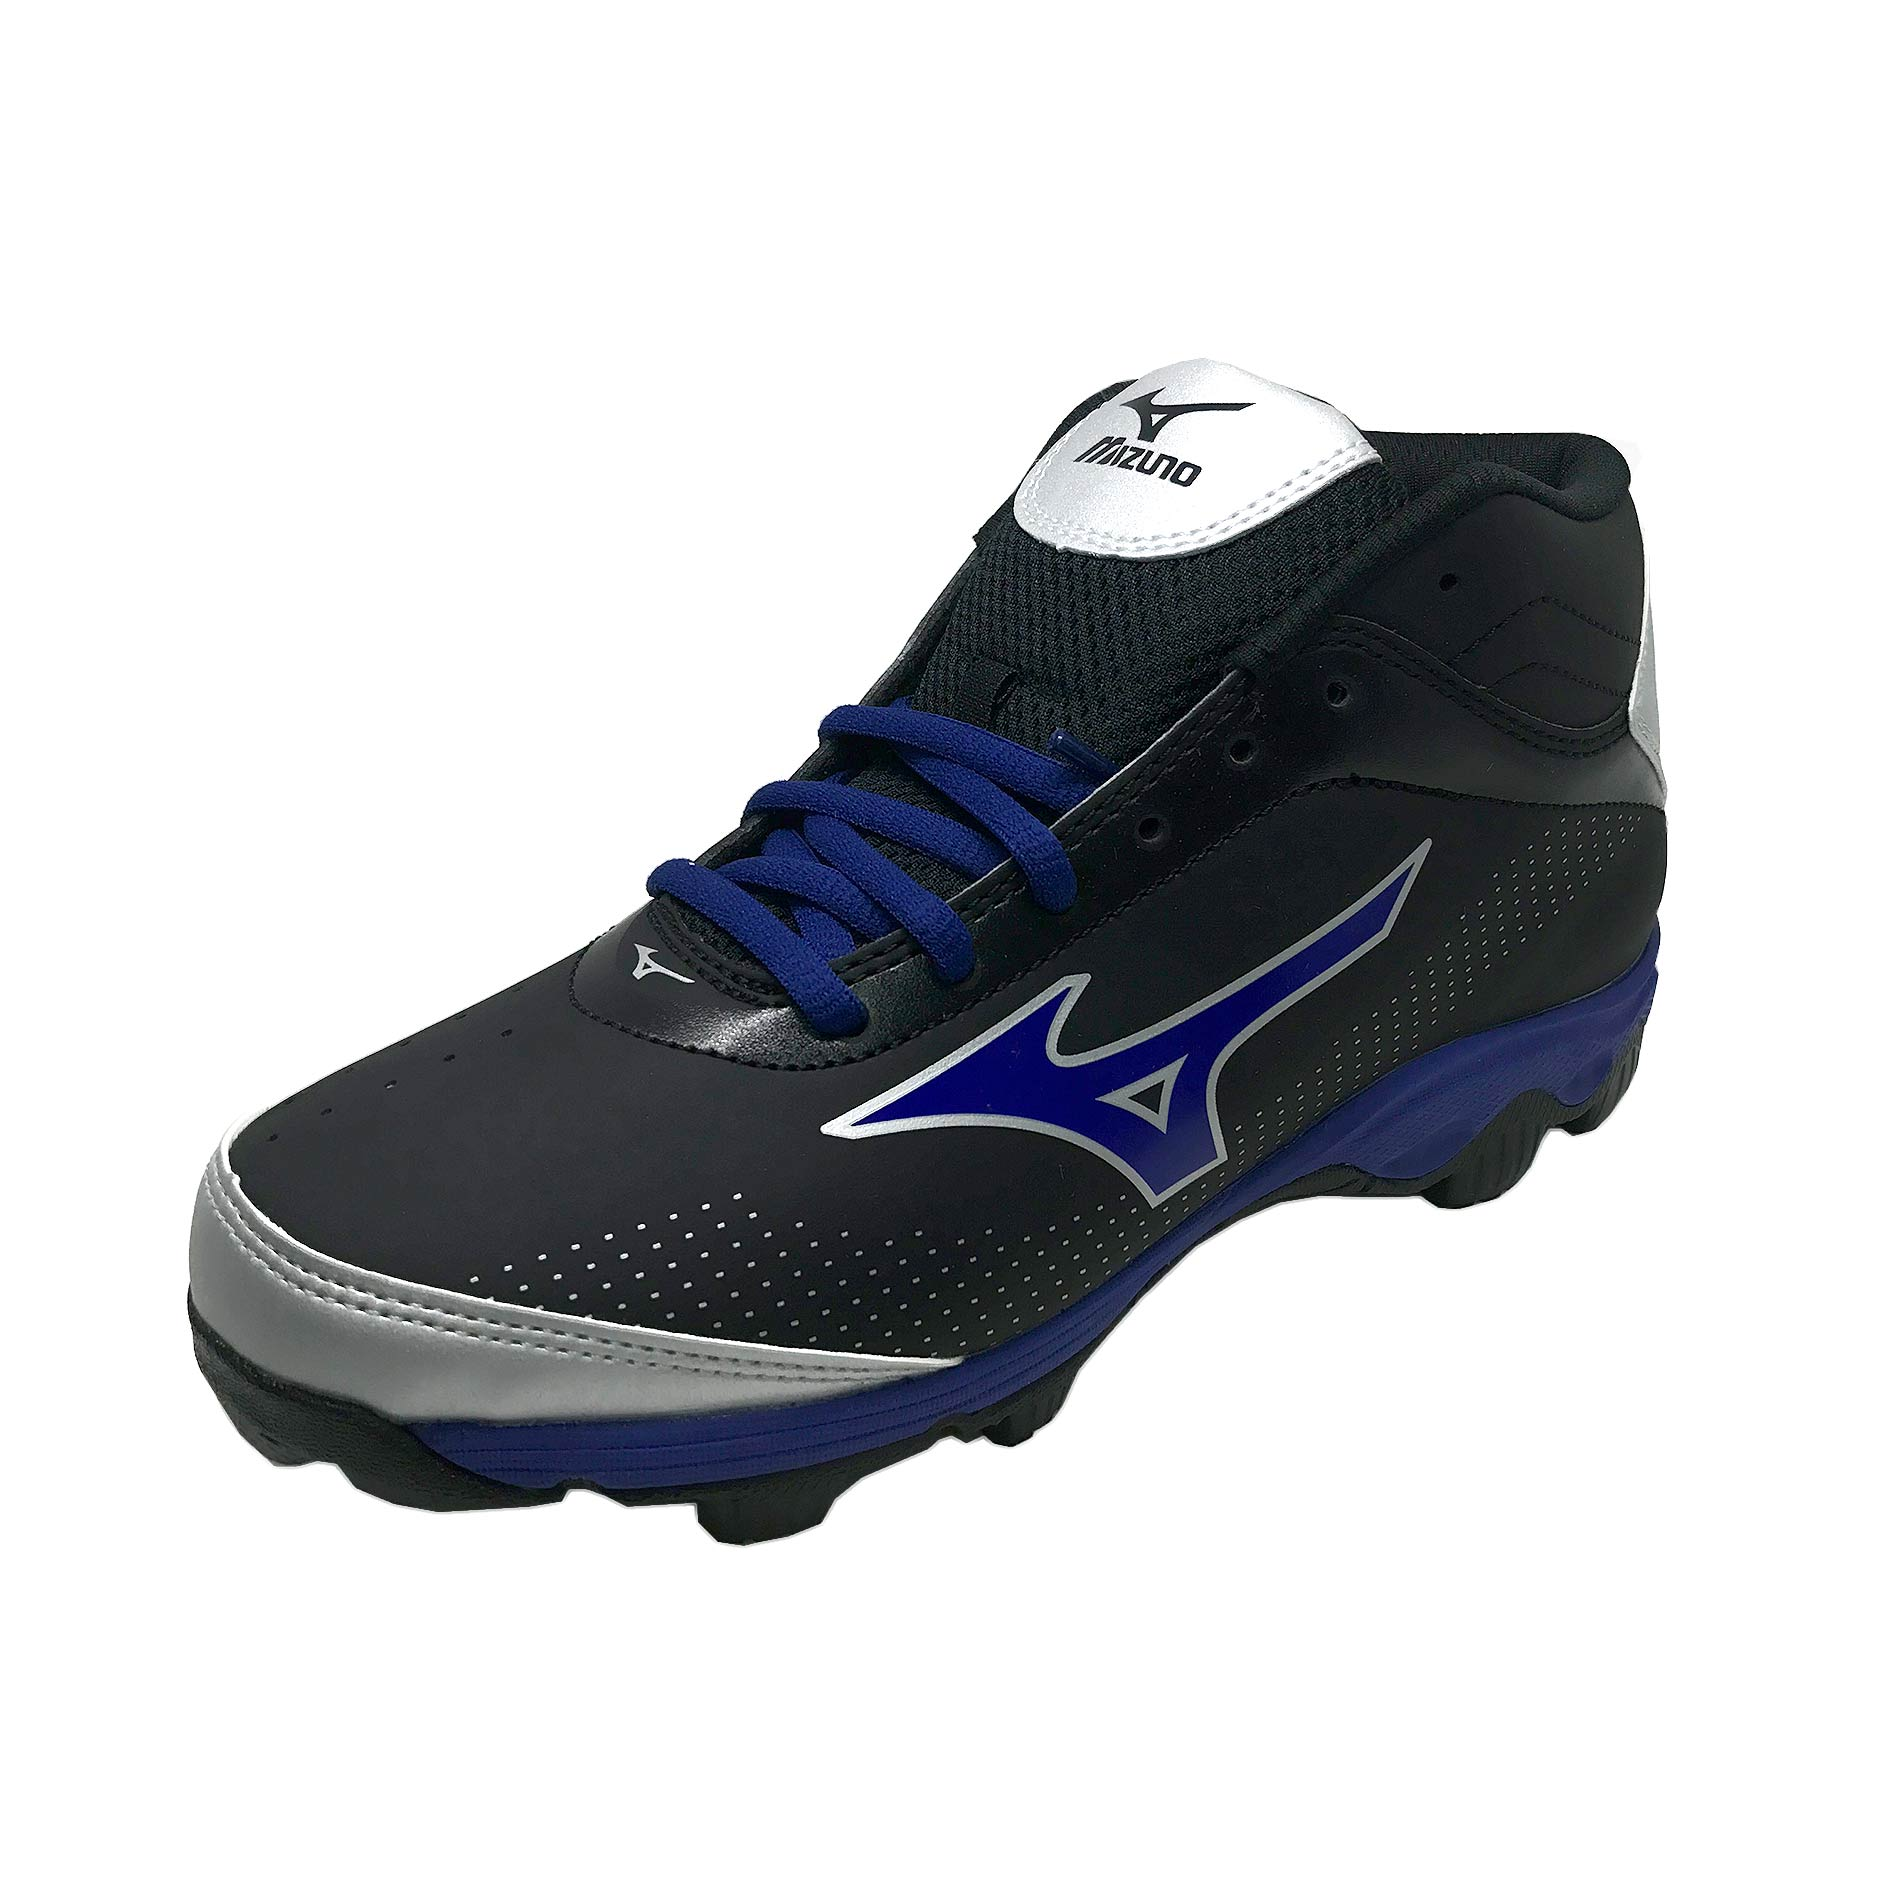 Mizuno Youth 9-Spike Franchise 7 Mid Molded Baseball Clea...